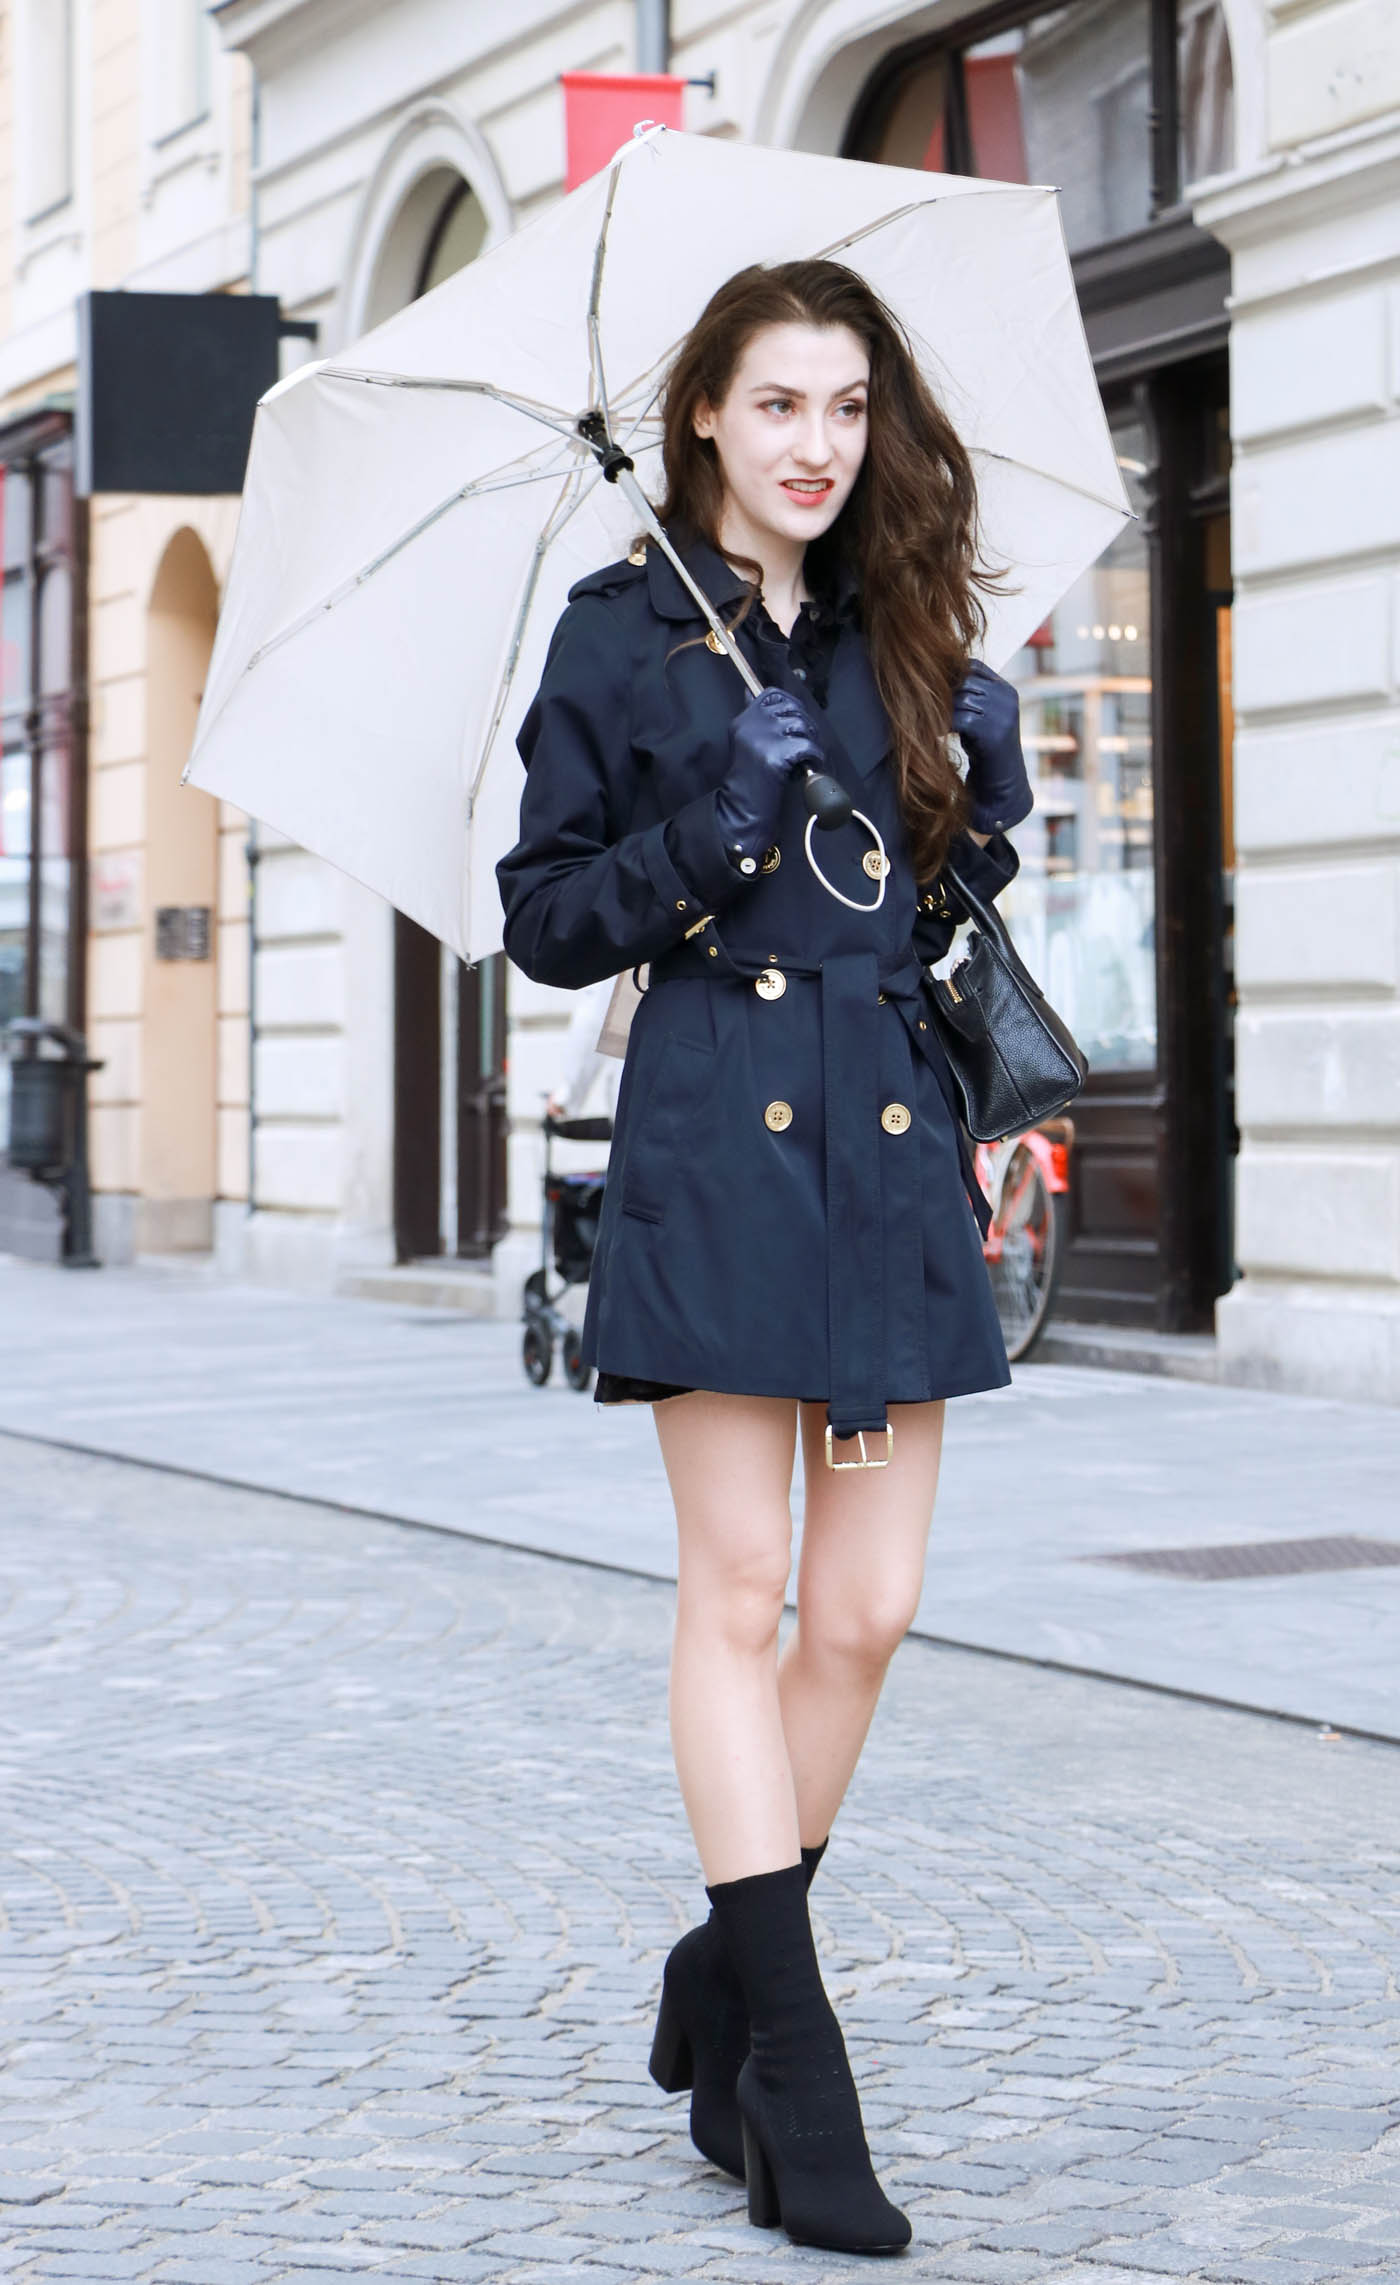 Fashion Blogger Veronika Lipar of Brunette from Wall Street wearing blue trench coat and ankle booties on a rainy day